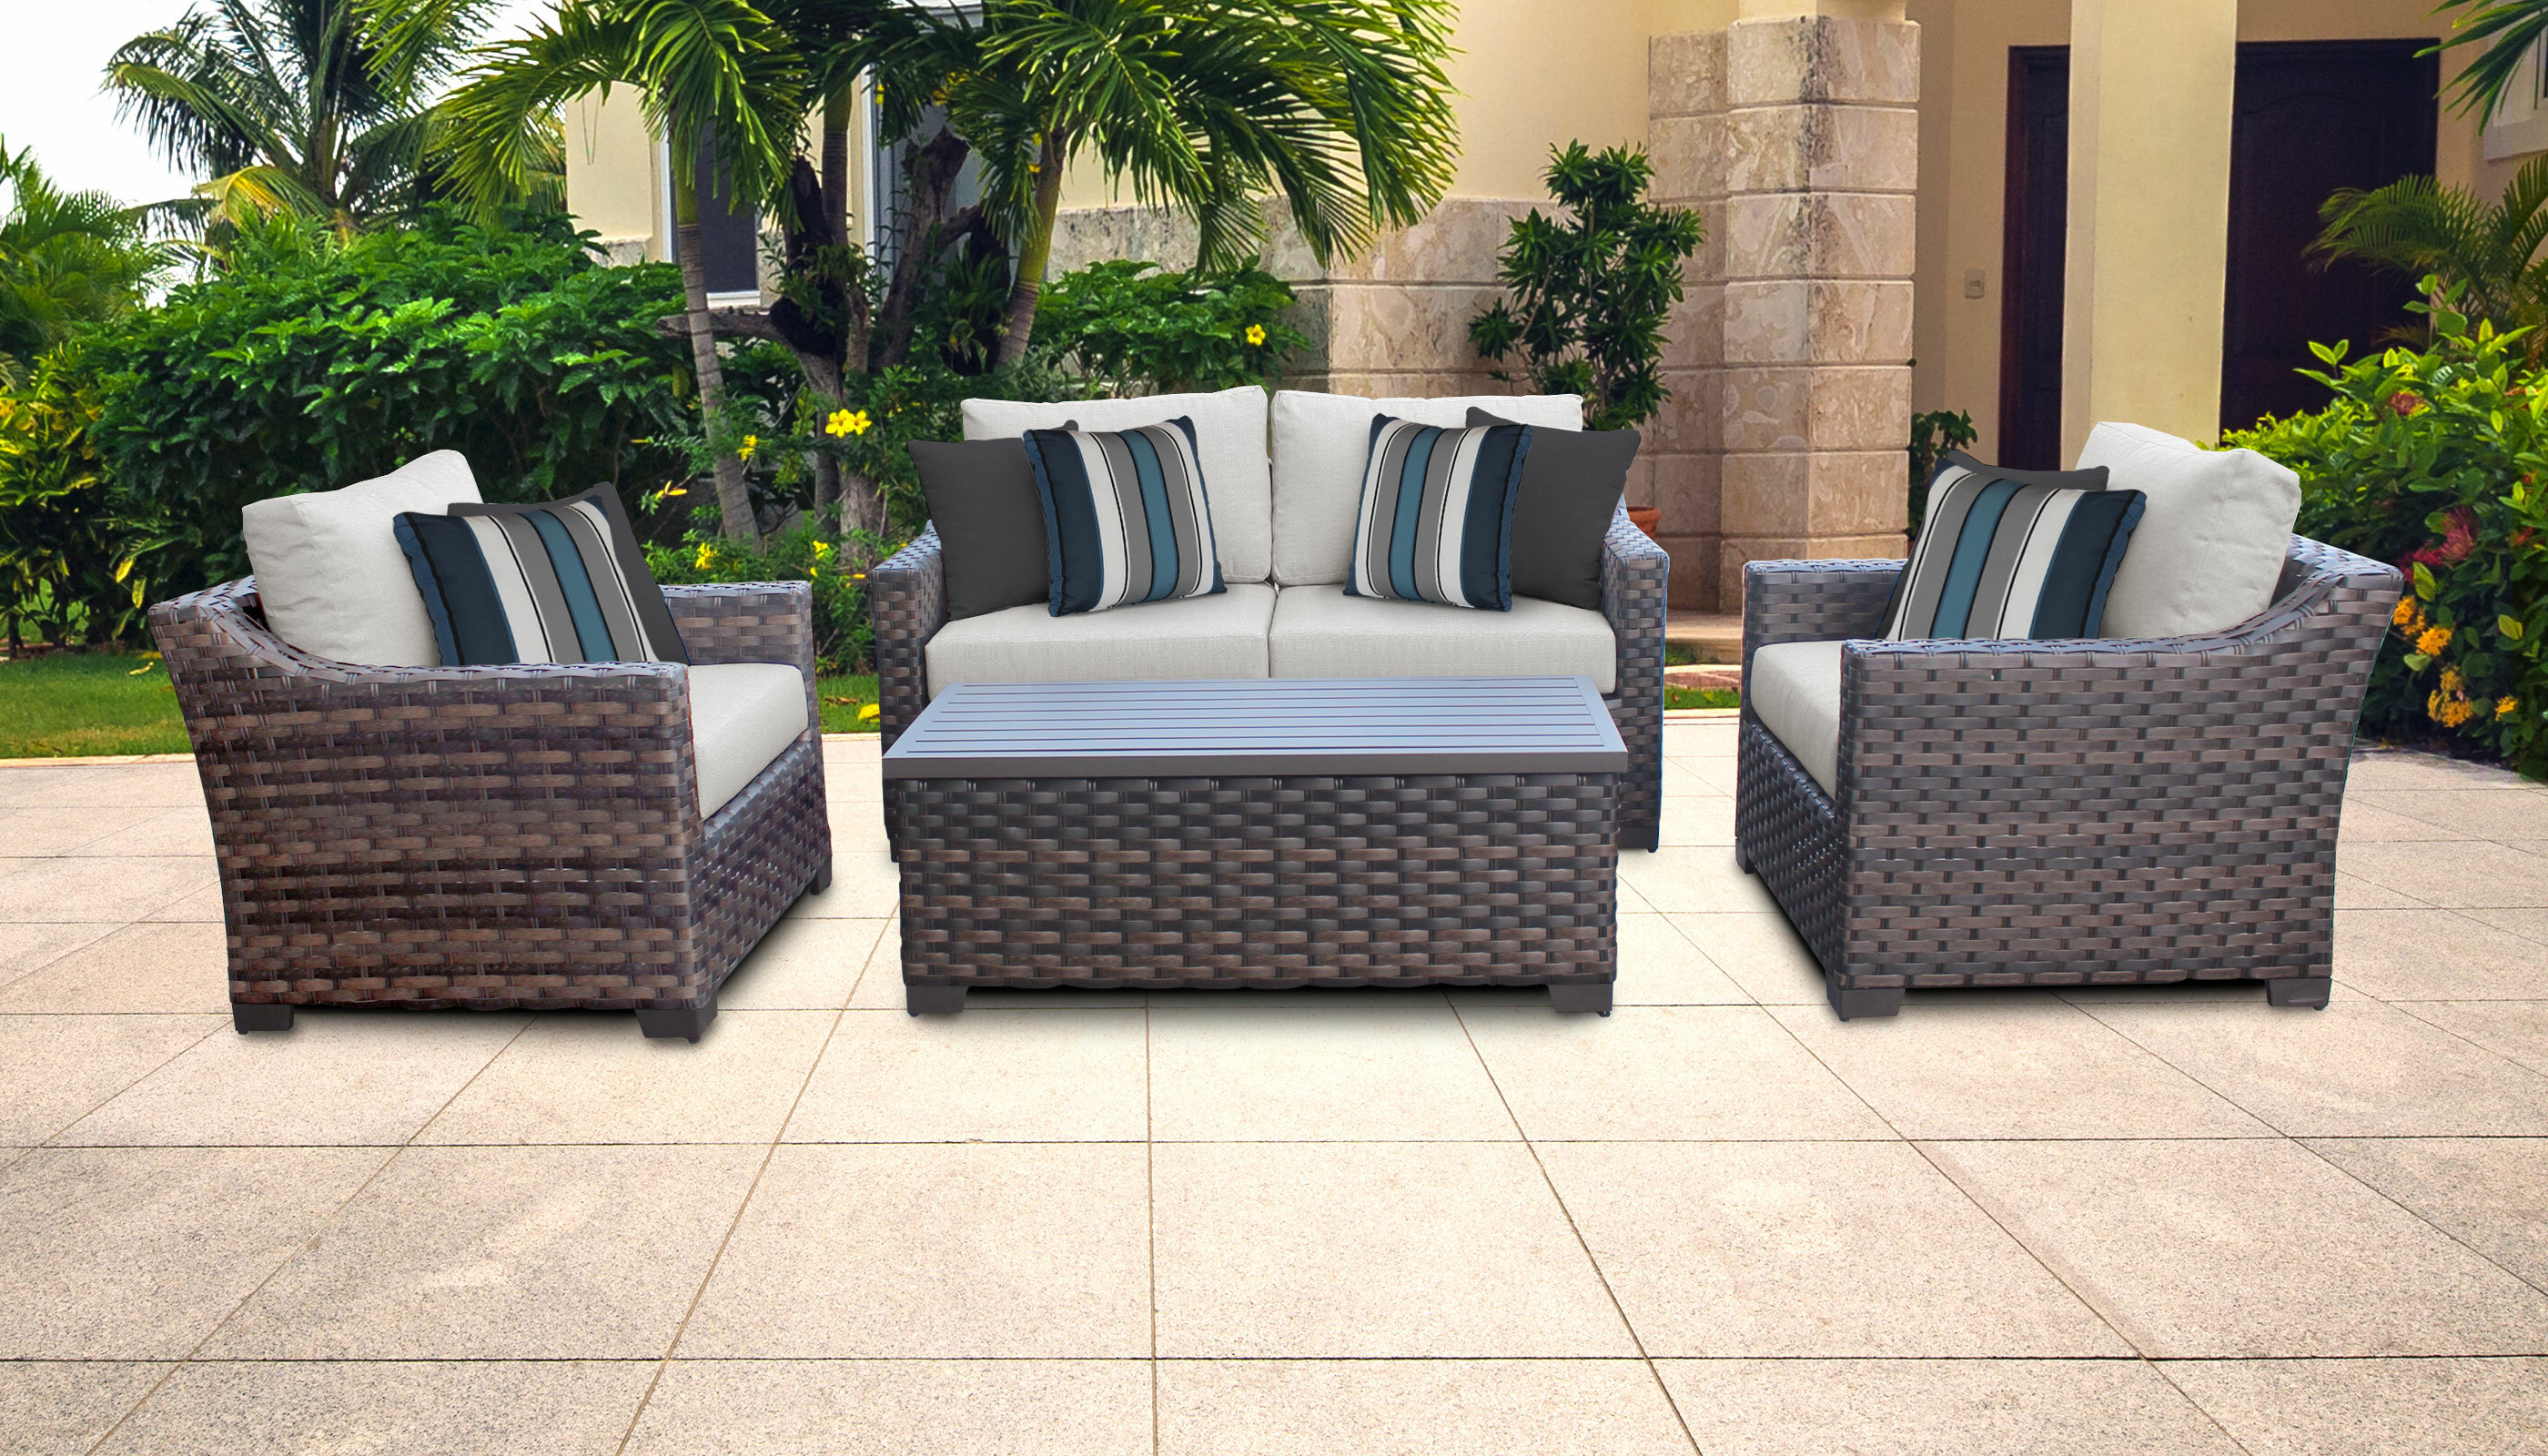 Newest Oreland Patio Sofas With Cushions Intended For Kathy Ireland Homes & Gardens River Brook 5 Piece Outdoor Wicker Patio  Furniture Set 05C (View 8 of 20)